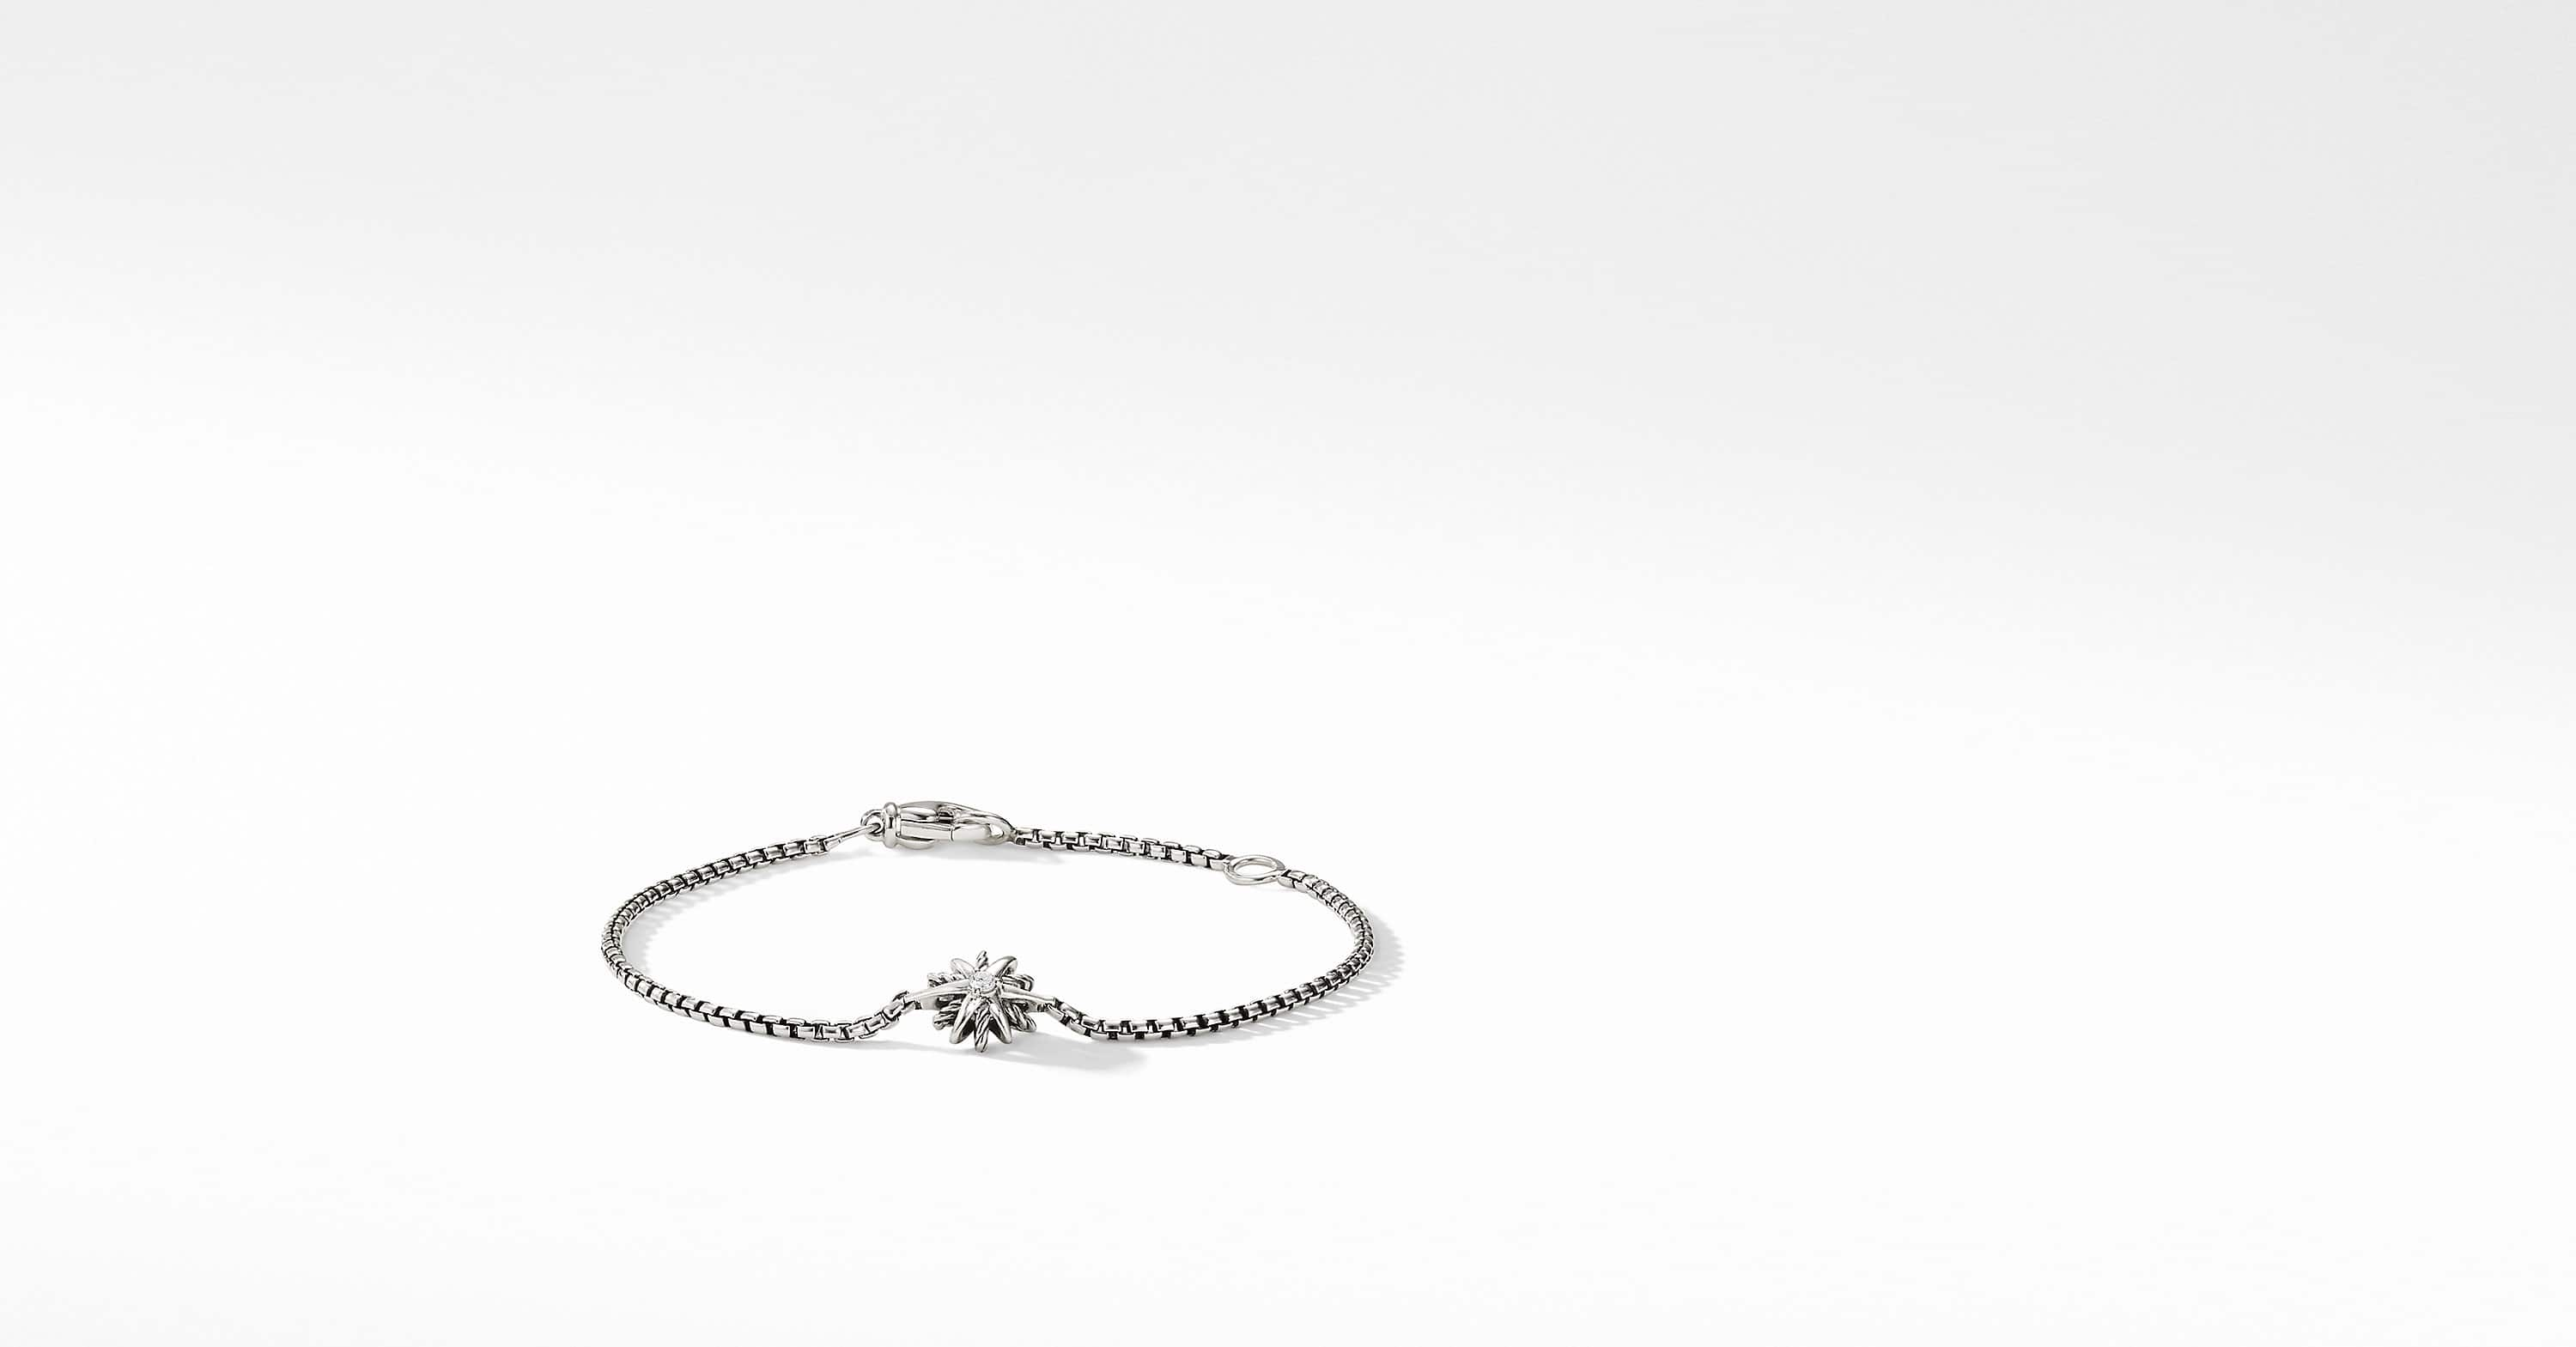 Bracelet Starburst enfant avec diamants, 8 mm